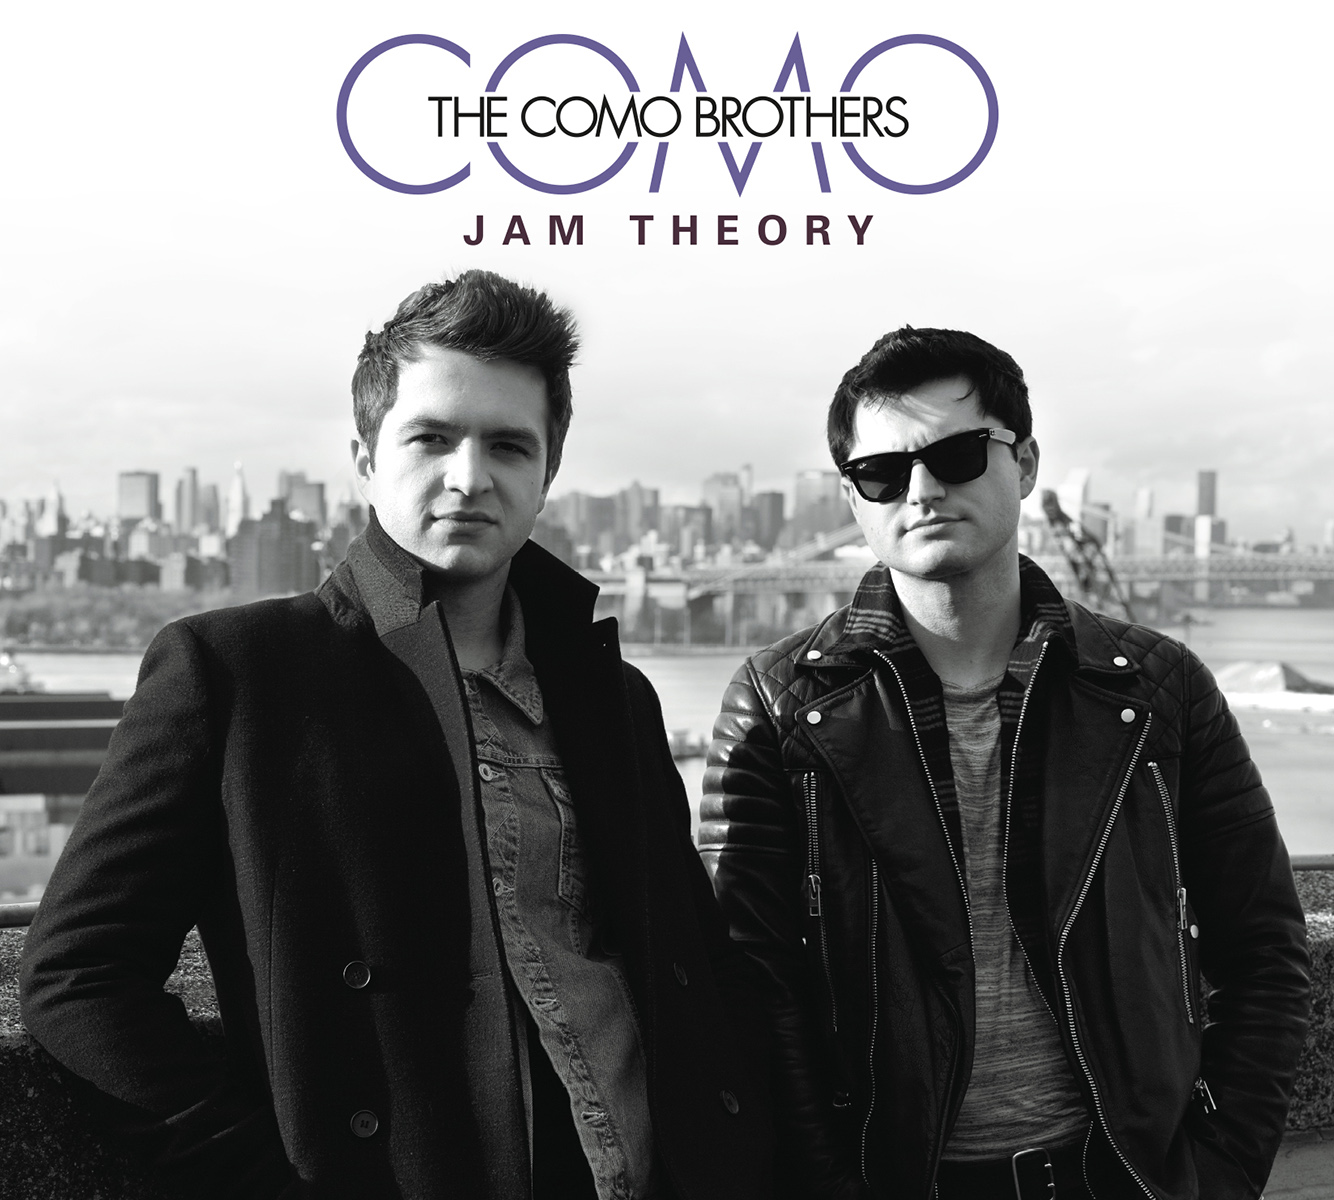 The Como Brothers - Jam Theory